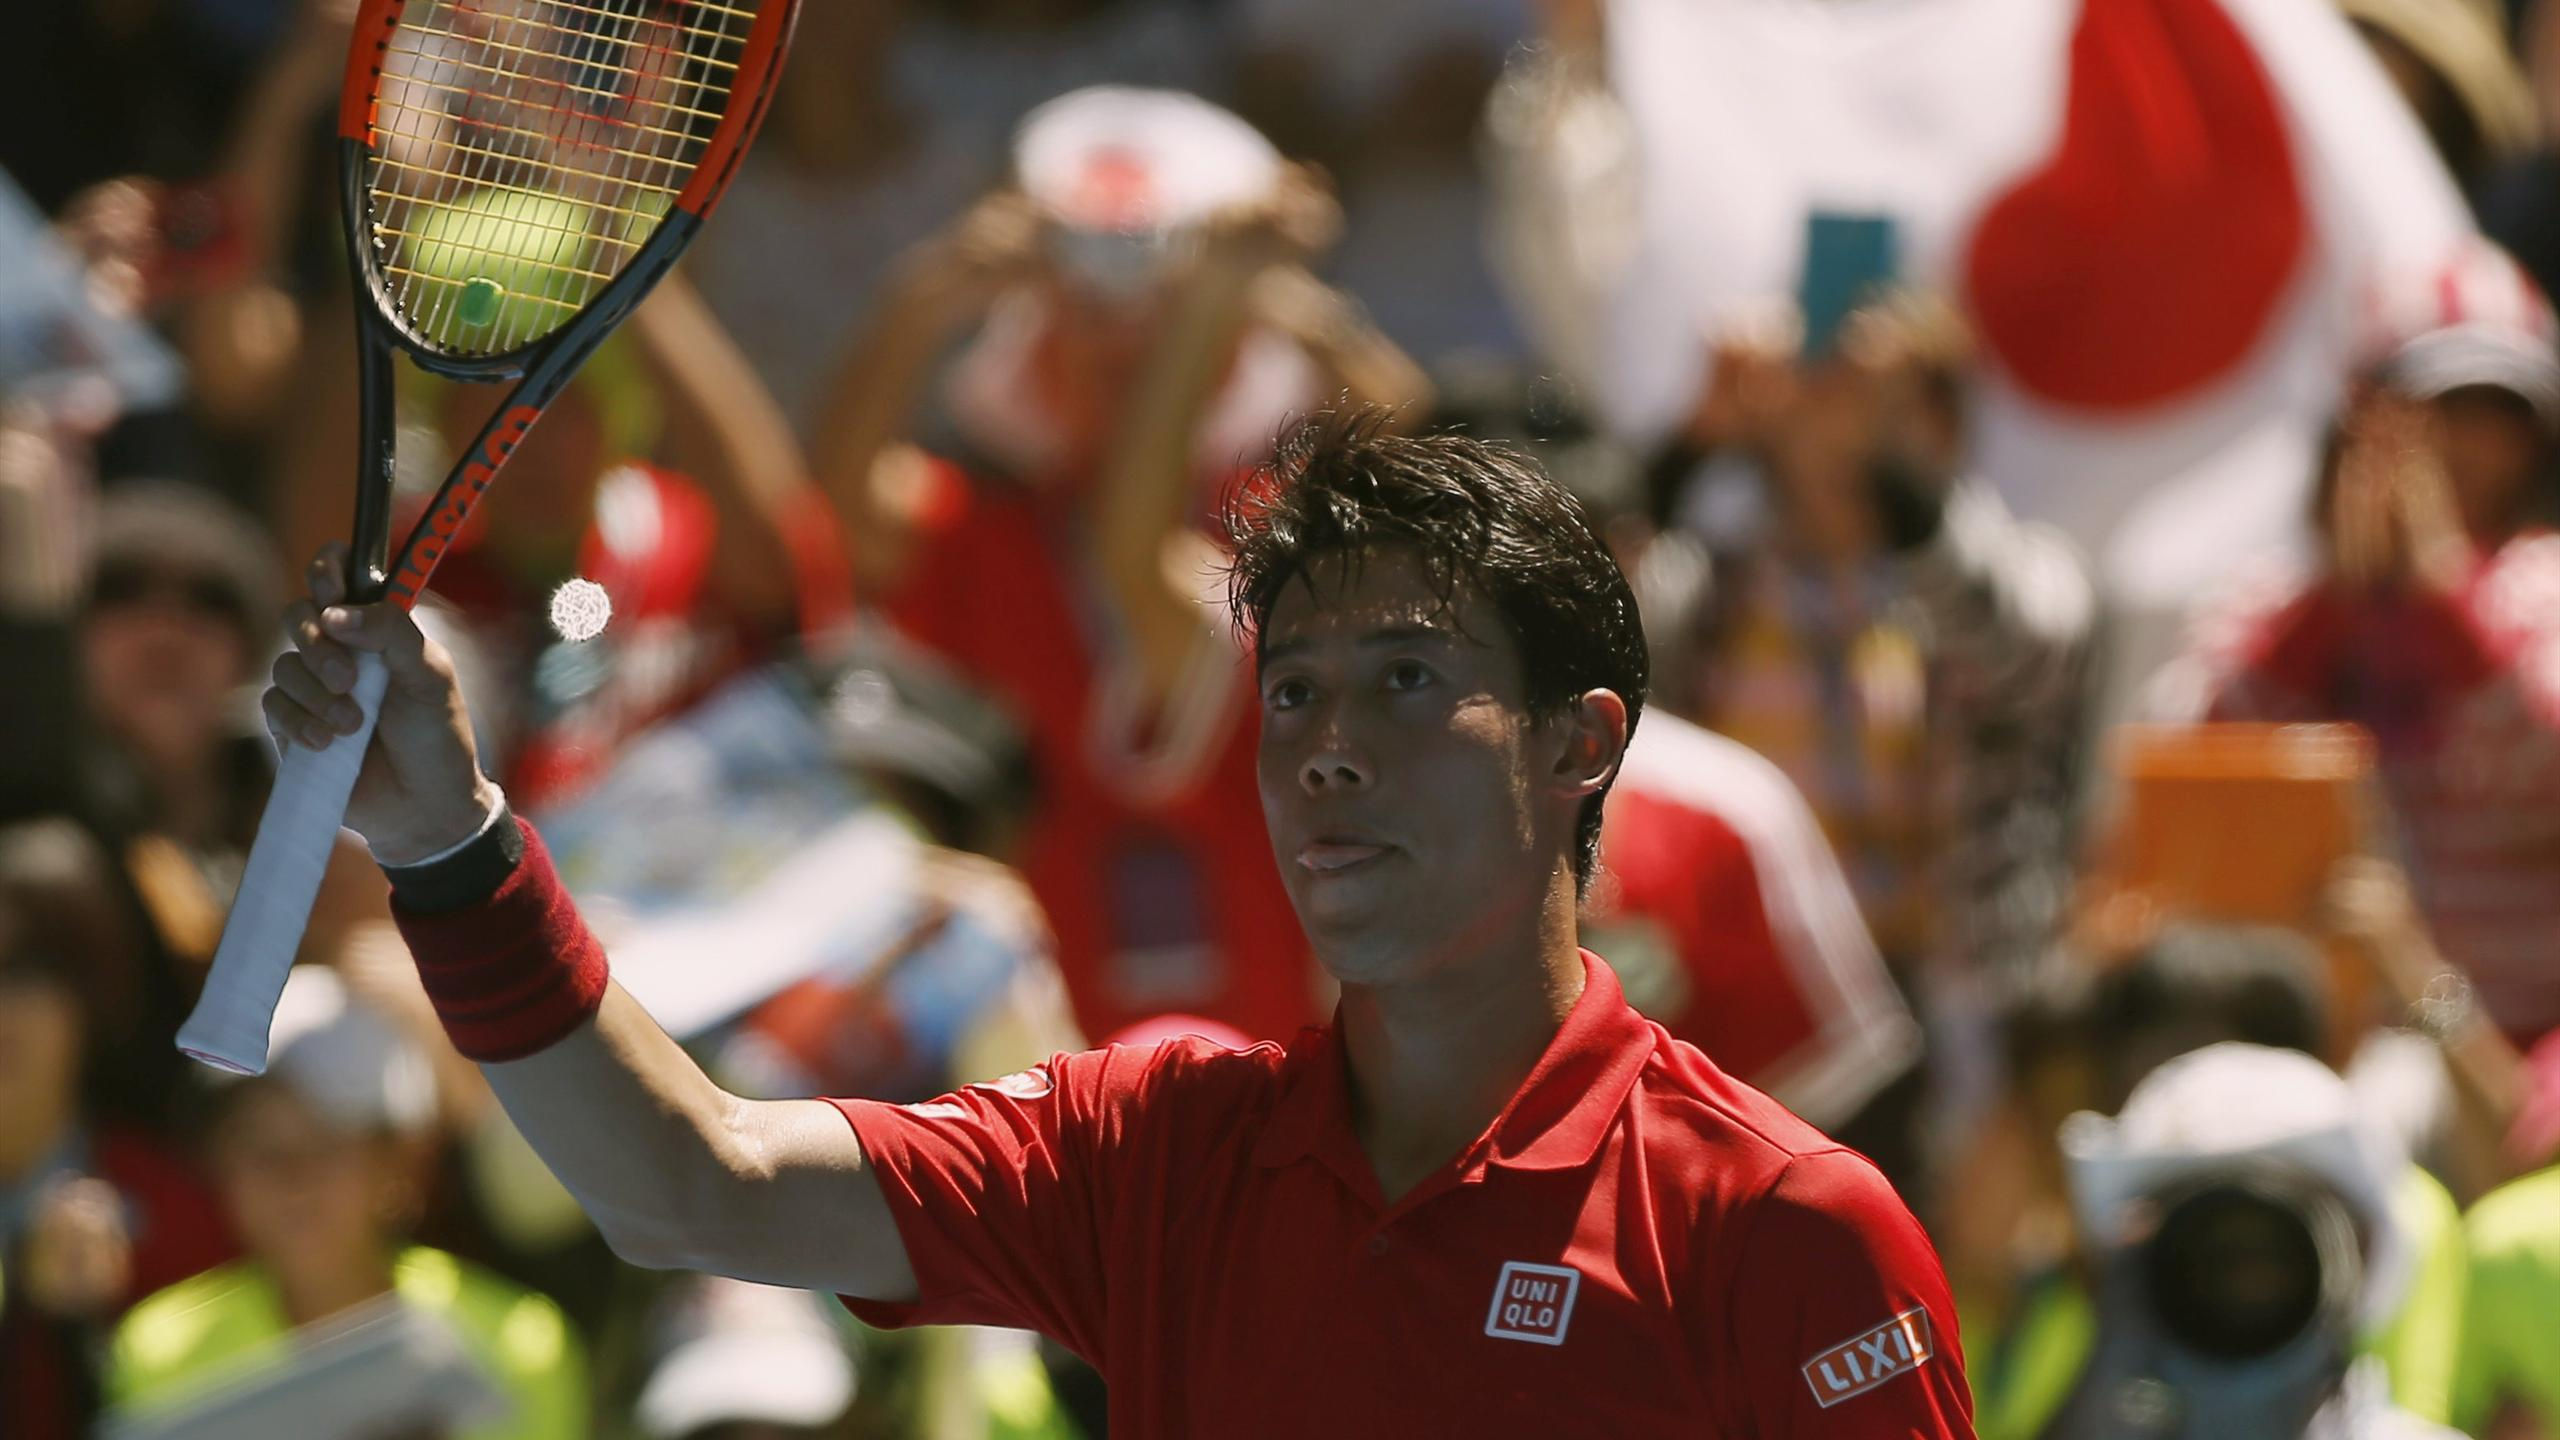 Japan's Kei Nishikori celebrates after winning his Men's singles first round match against Russia's Andrey Kuznetsov